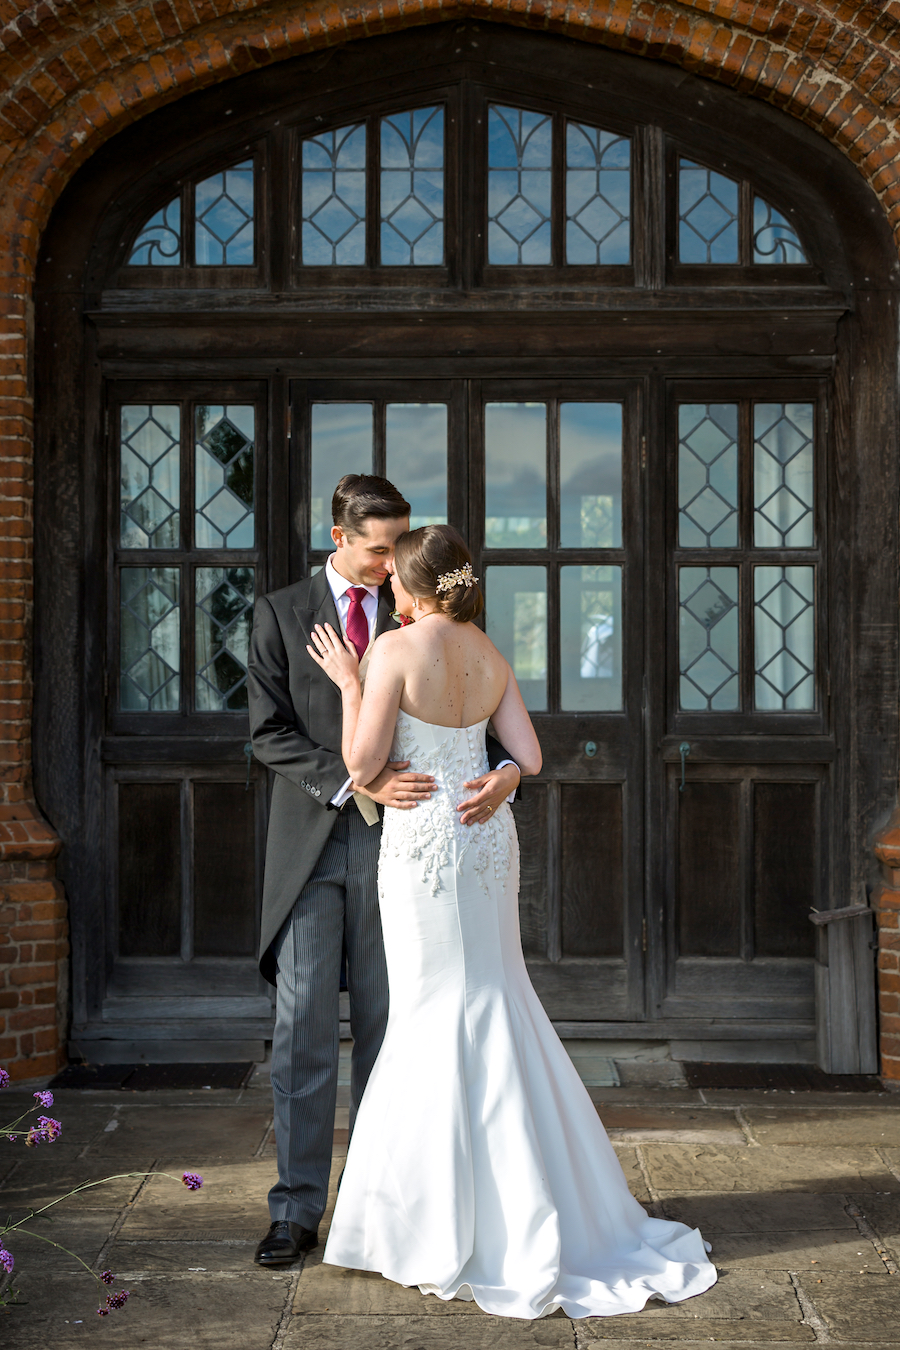 Real wedding by Ayshea Goldberg Photography at Layer Marney Tower (25)